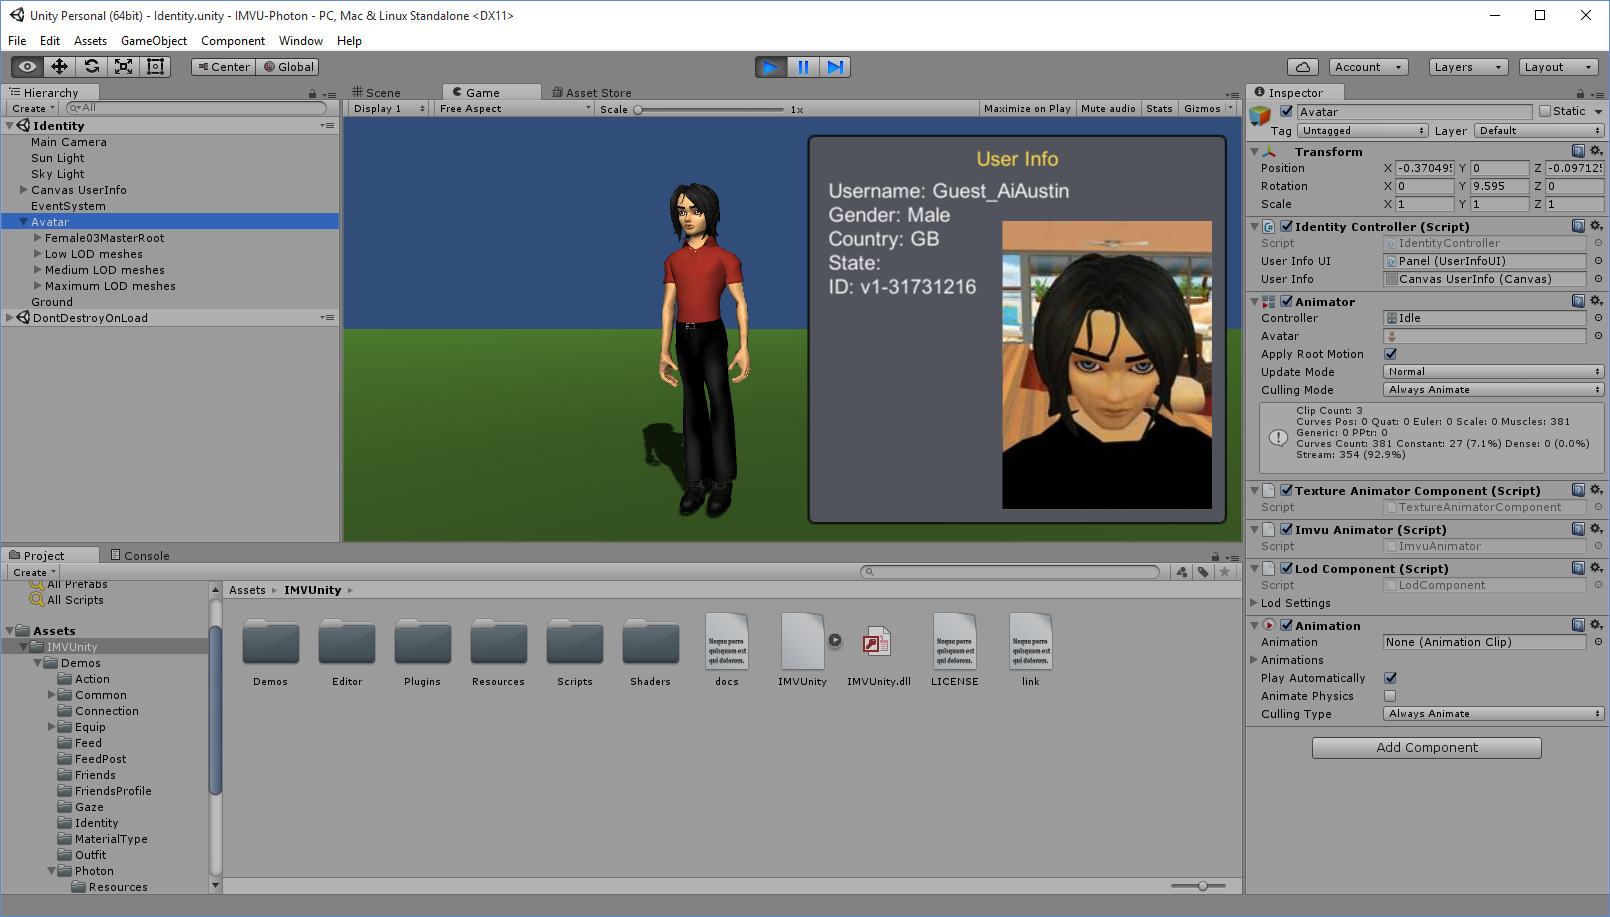 Unity, Photon MMO and IMVU Avatars | Austin Tate's Blog